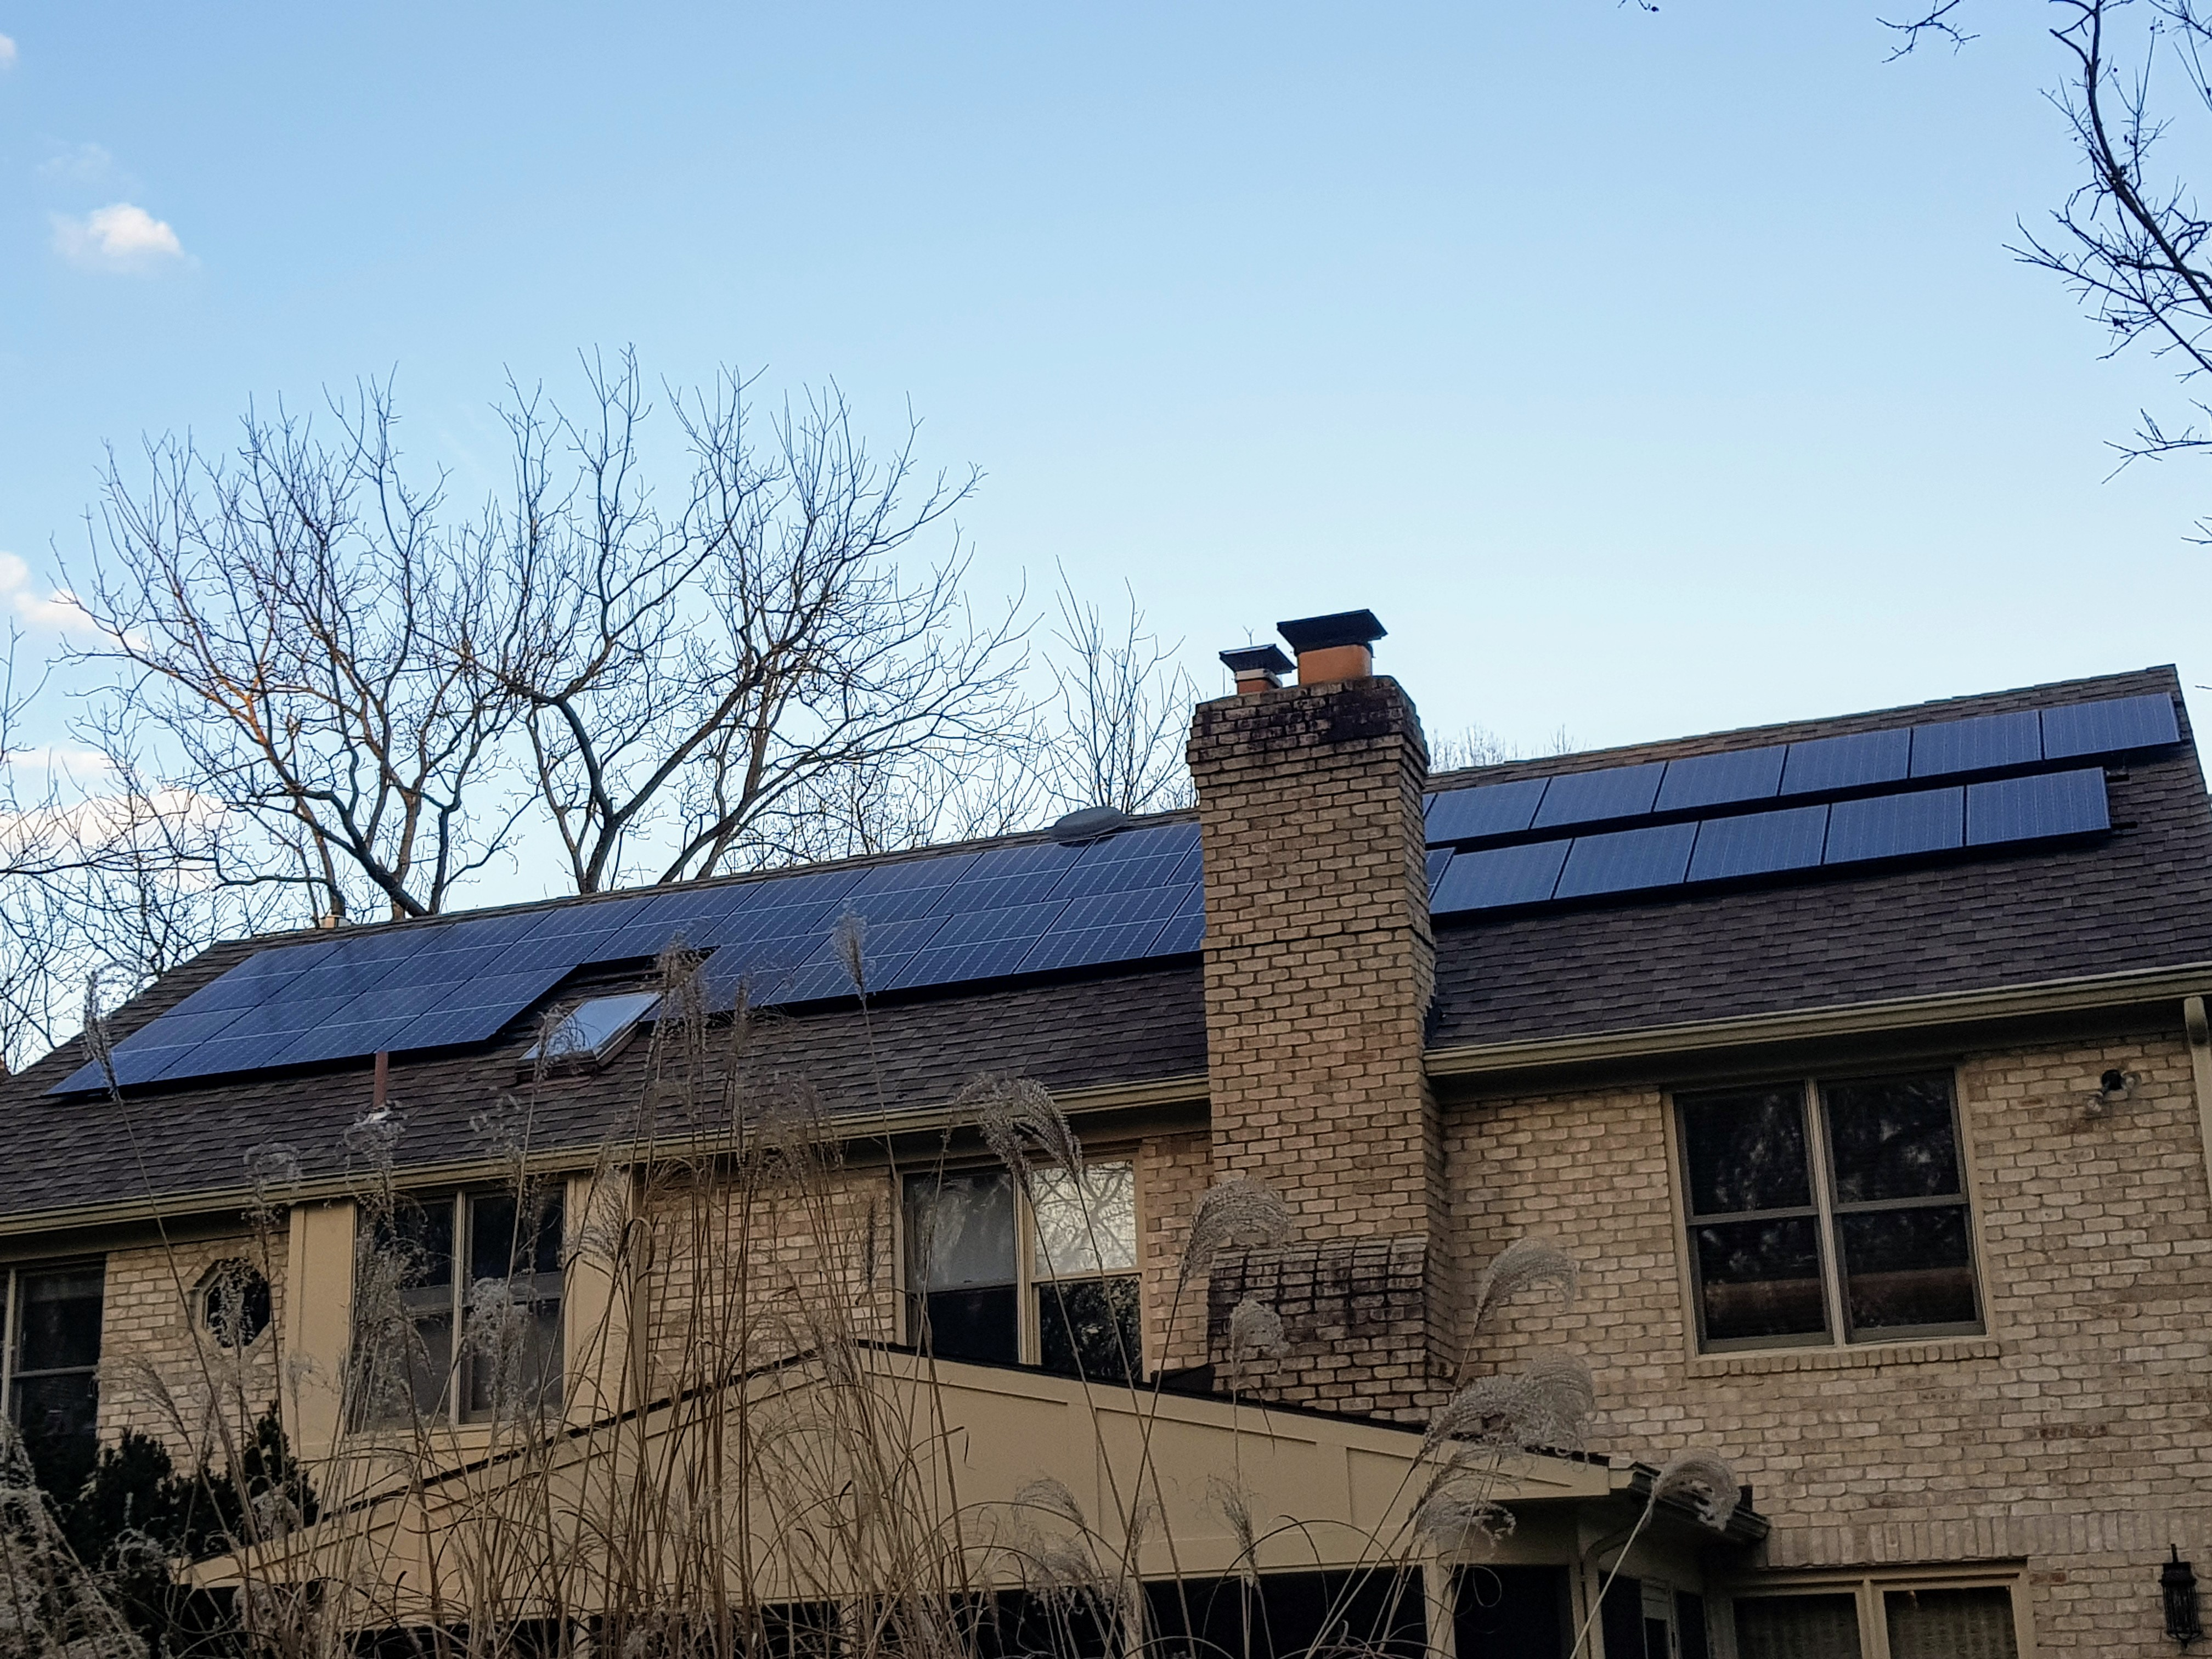 Solar Panel Installation on a Home in Baltimore, MD